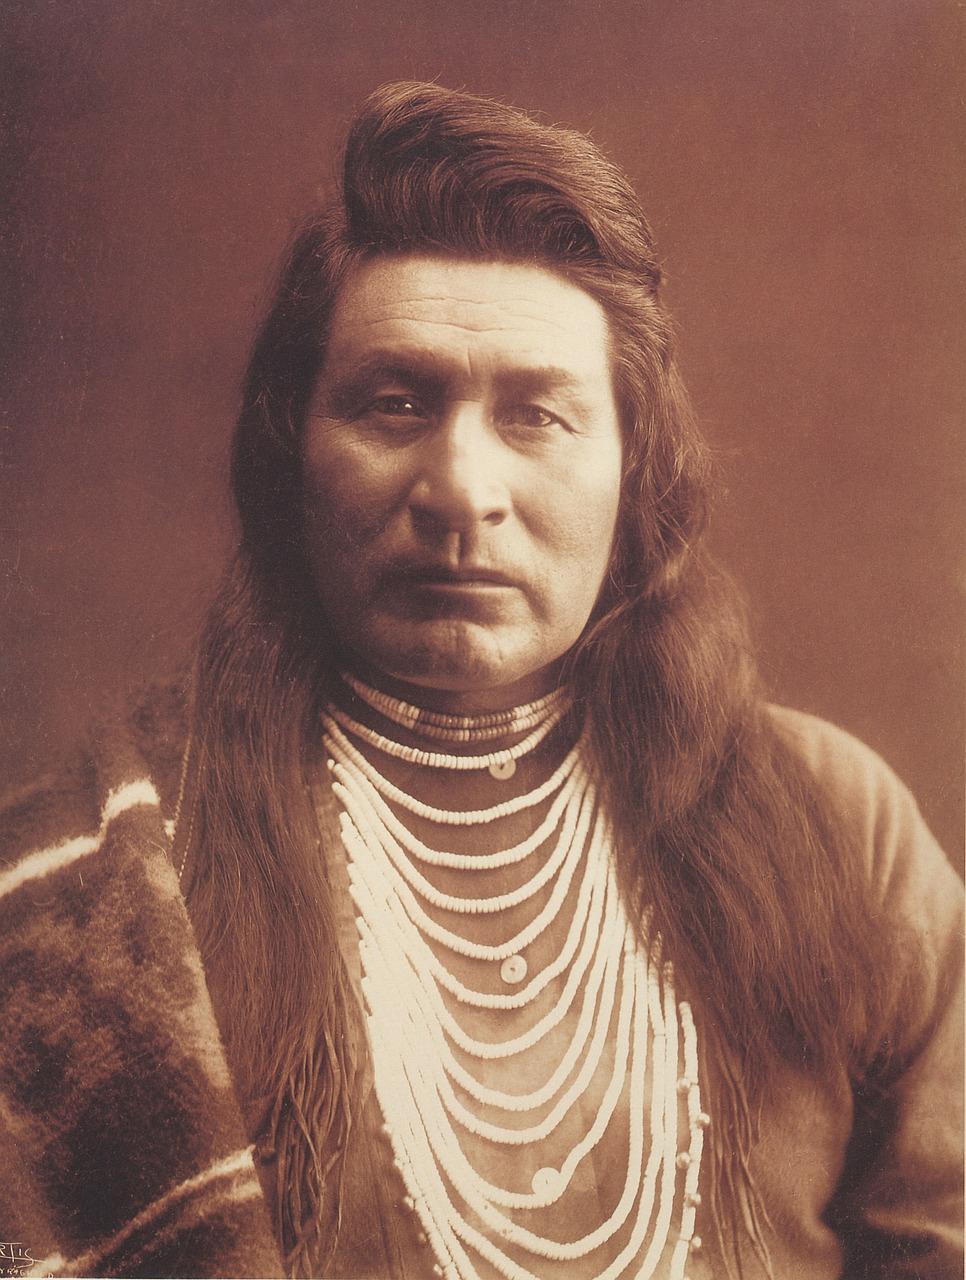 native american indian 1899 free photo